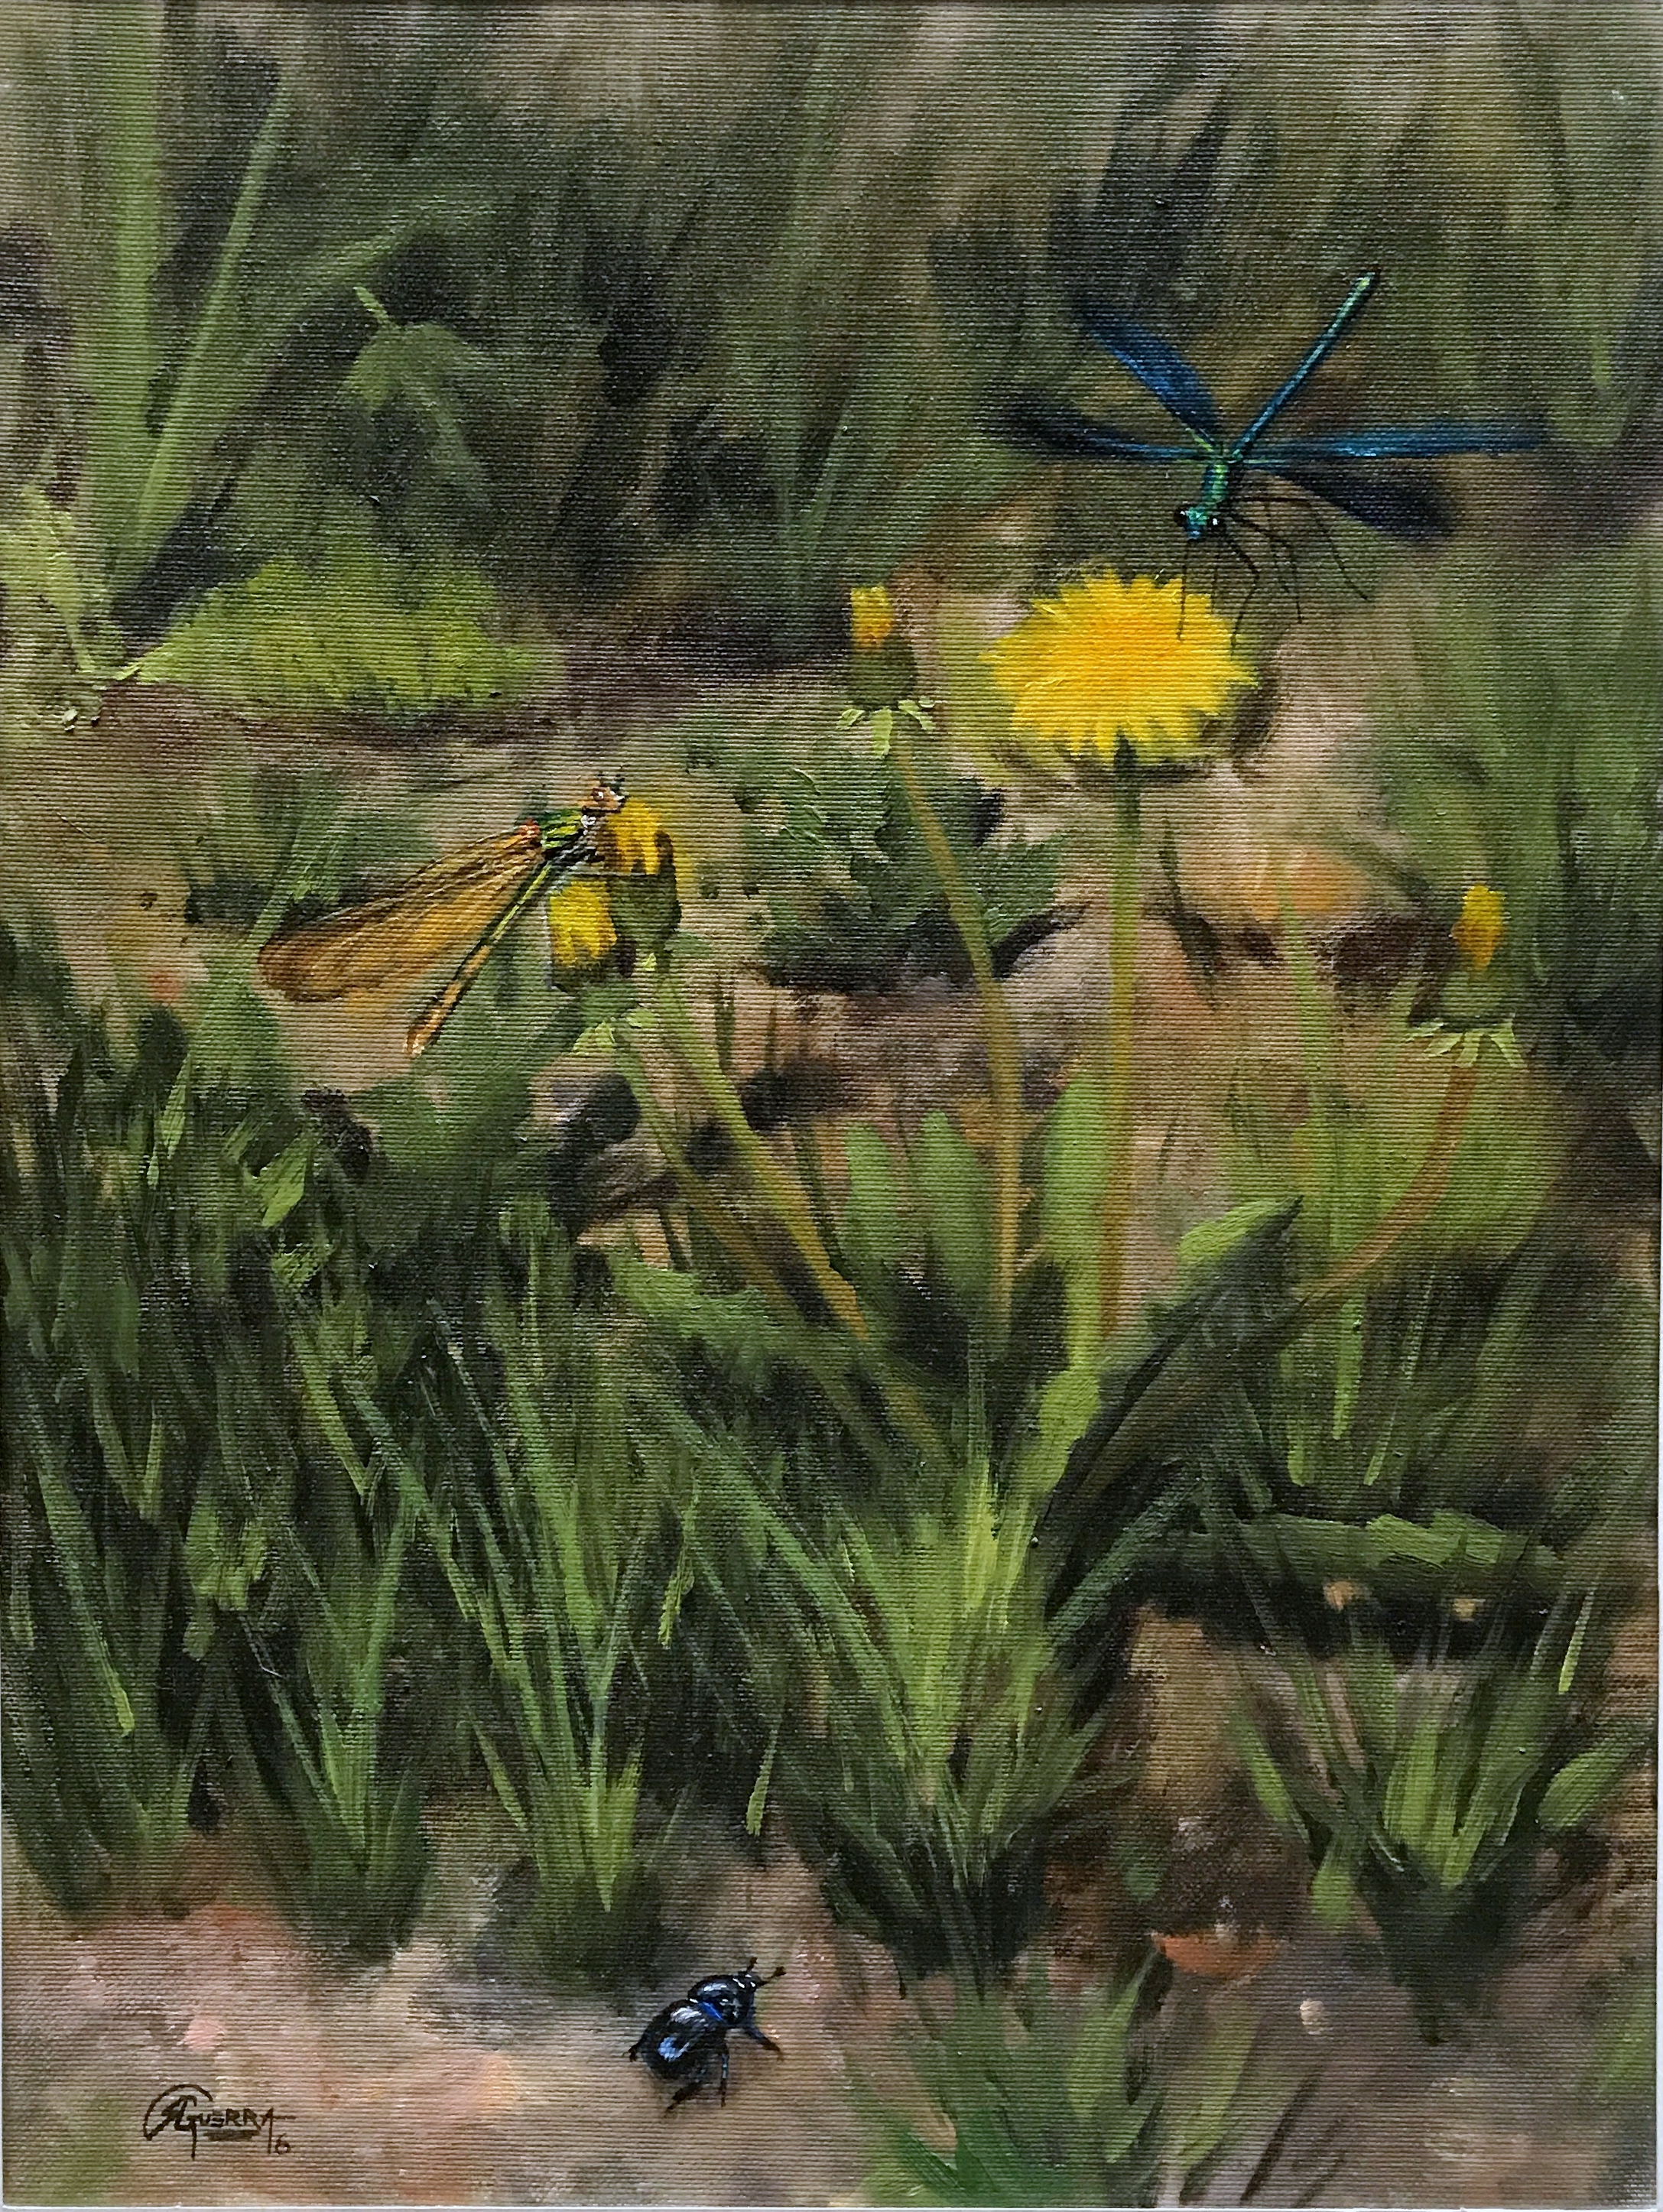 Dandelions and Dragonflies, Rafael Guerra Painting